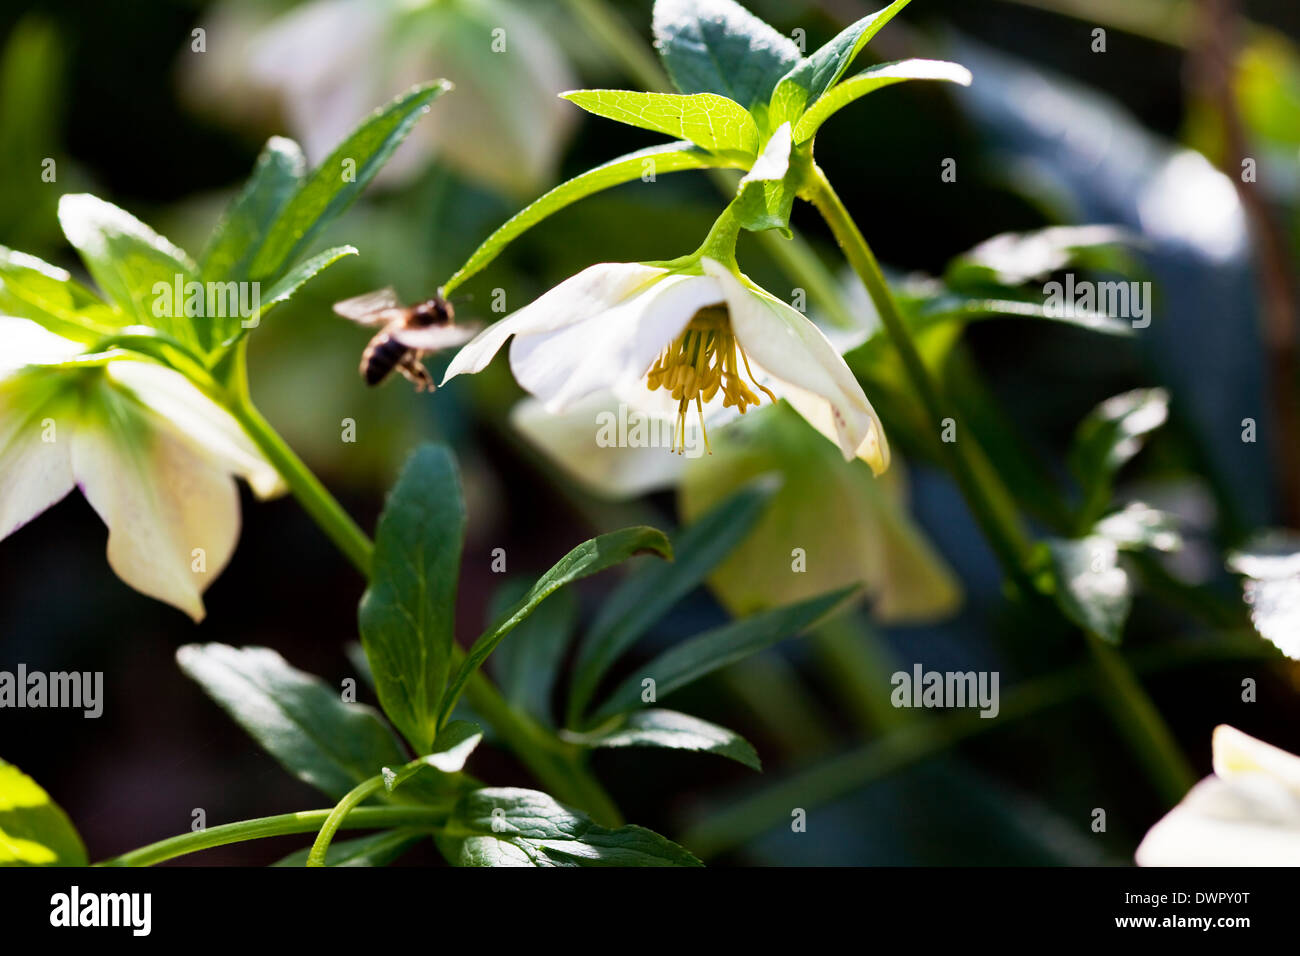 White hellebore with honey bee flying towards it, Spring time, England - Stock Image